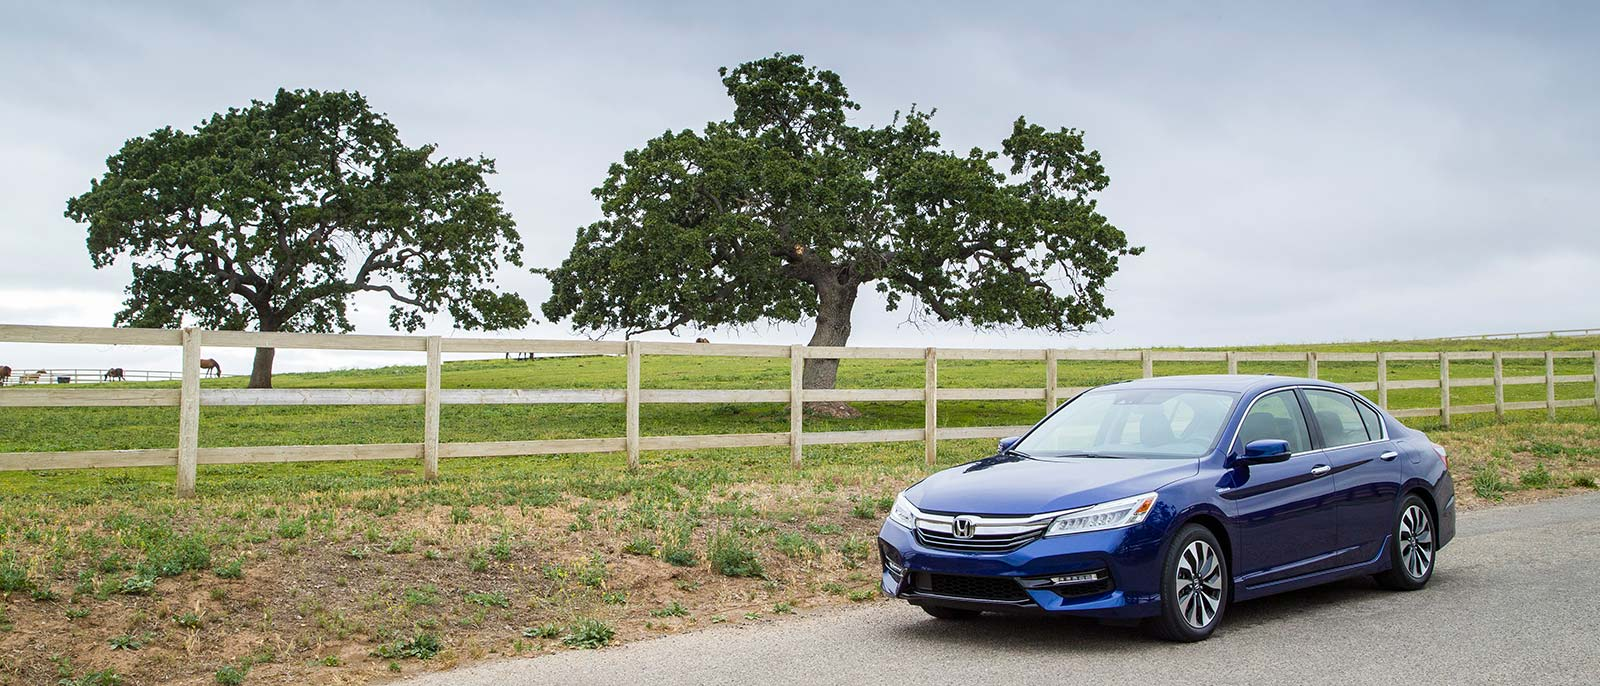 Accord Hybrid On Rural Road